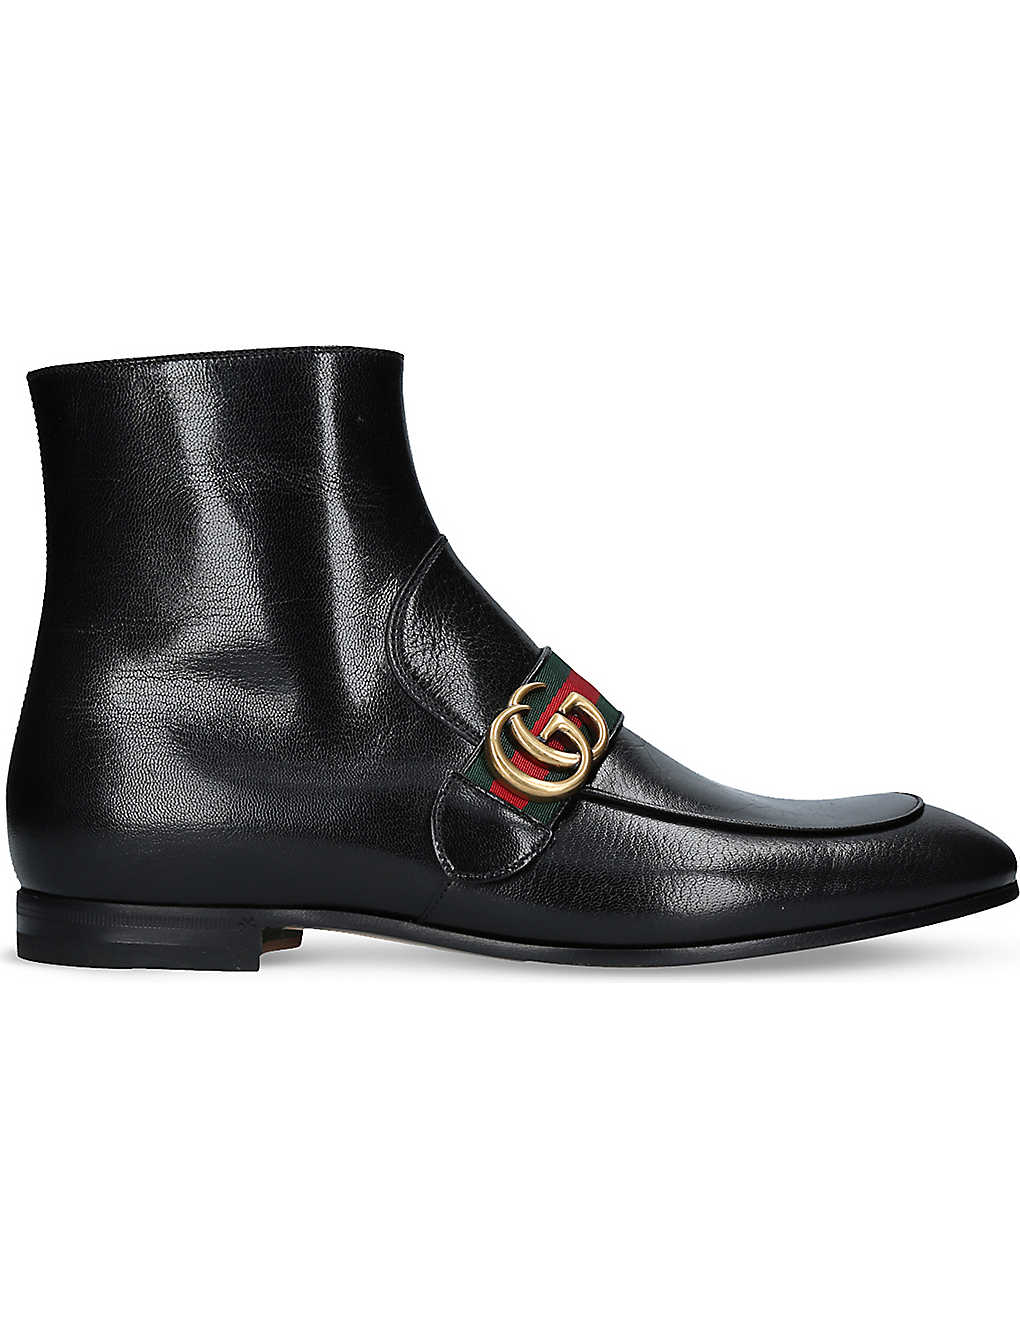 Read more Black Donnie Boots RanXyPw